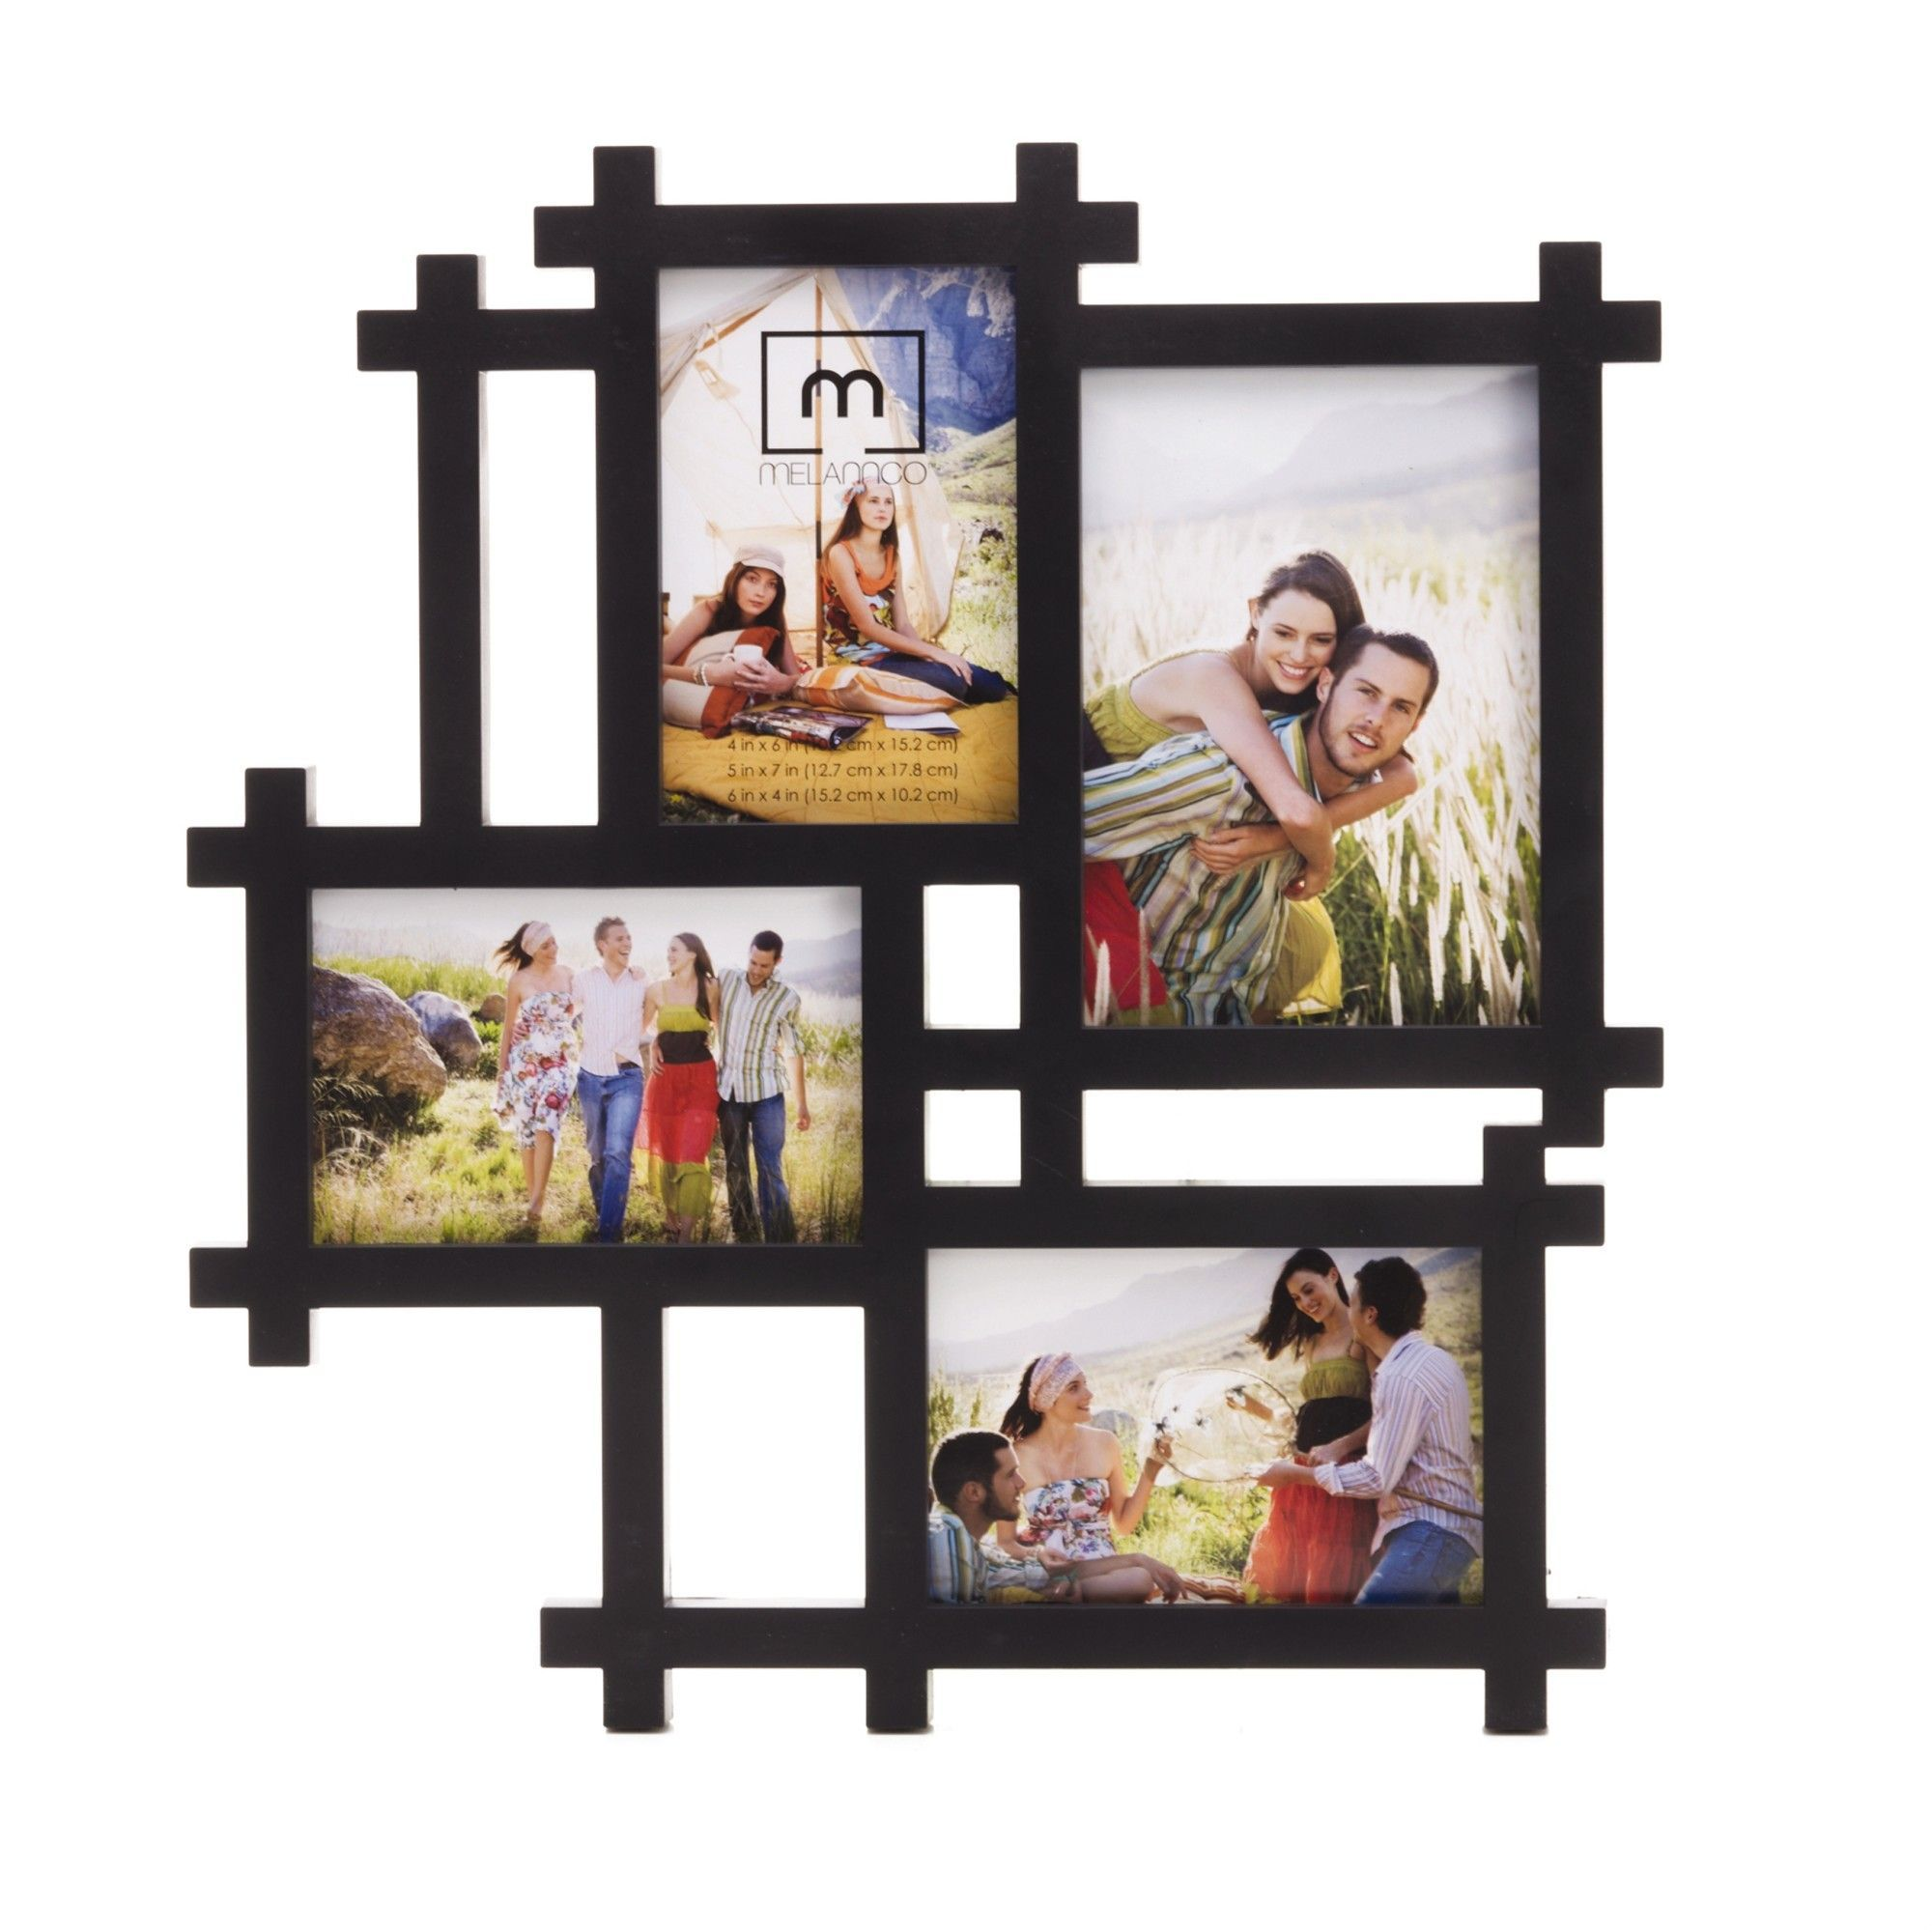 Melannco 4 Opening Lattice Collage Frame Collage Frames Frame Wall Collage Framed Photo Collage